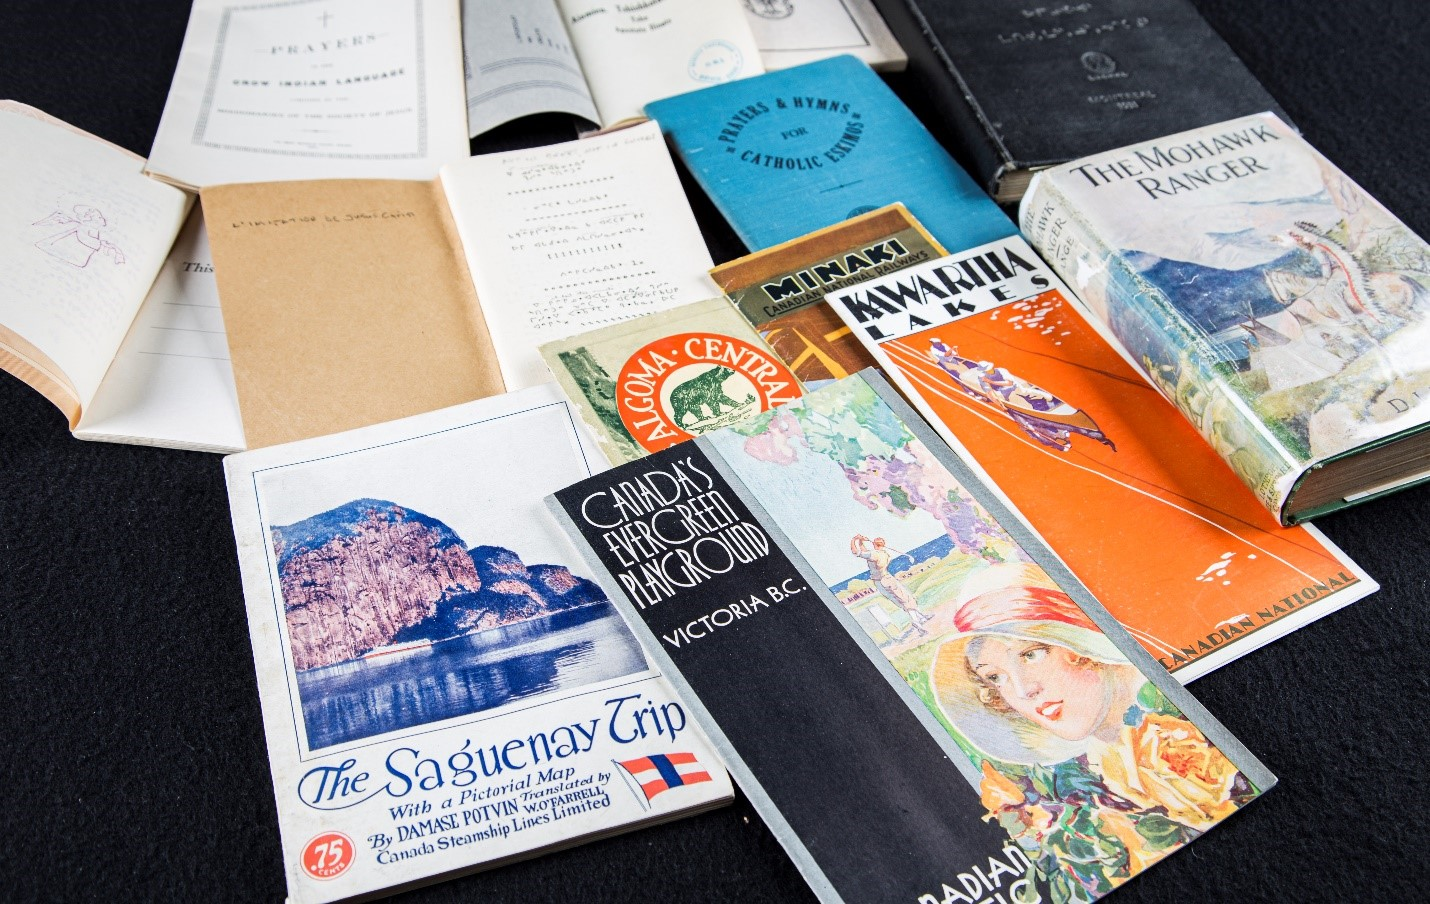 Colour photo of a variety of hardcover and softcover books.